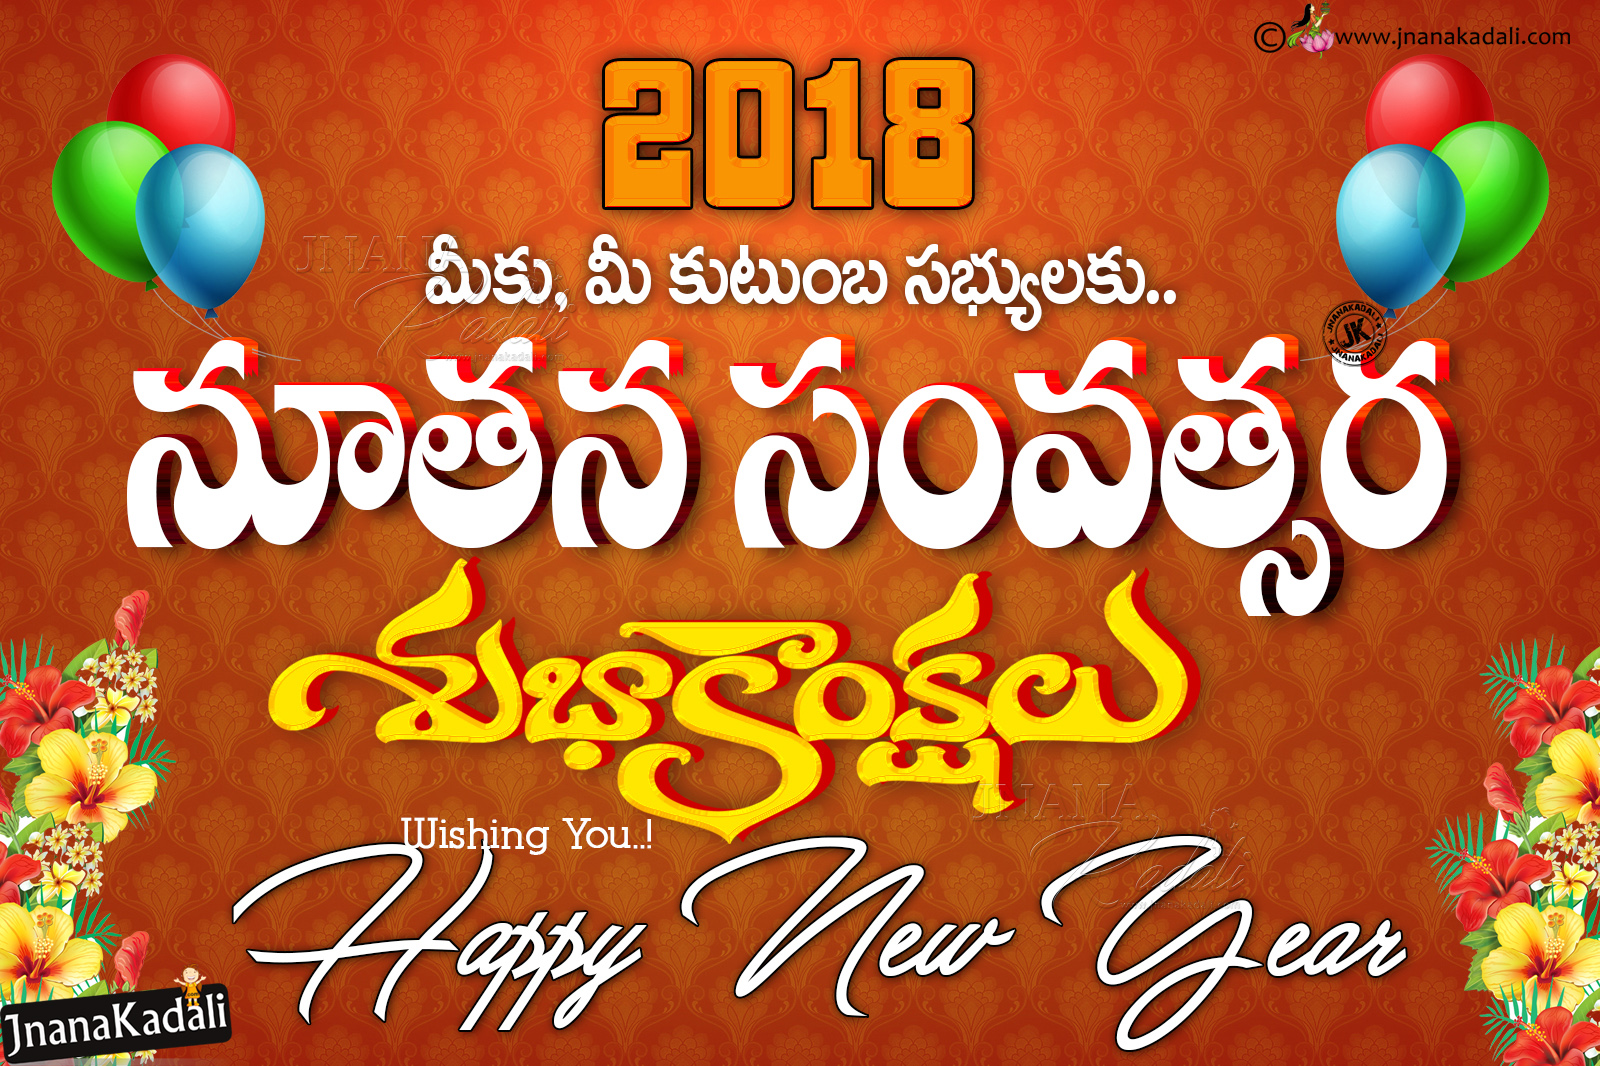 2018 best trending happy new year greetings with hd wallpapers free new year greetings in telugu best happy new year greetings in telugu 2018 telugu kristyandbryce Image collections